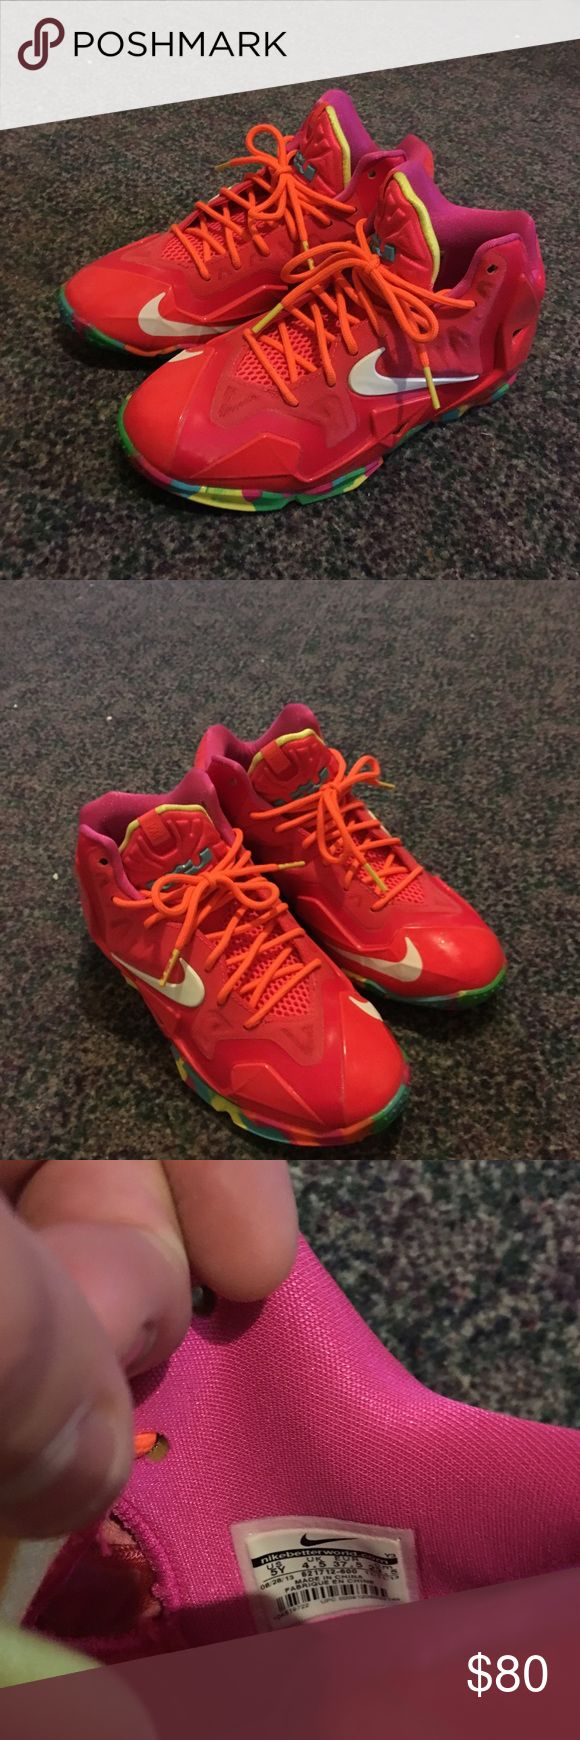 Lebron 11's fruity pebbles Lebron 11's fruity pebbles Only worn once in house size 5y basically brand new will deliver if need be Nike Shoes Athletic Shoes